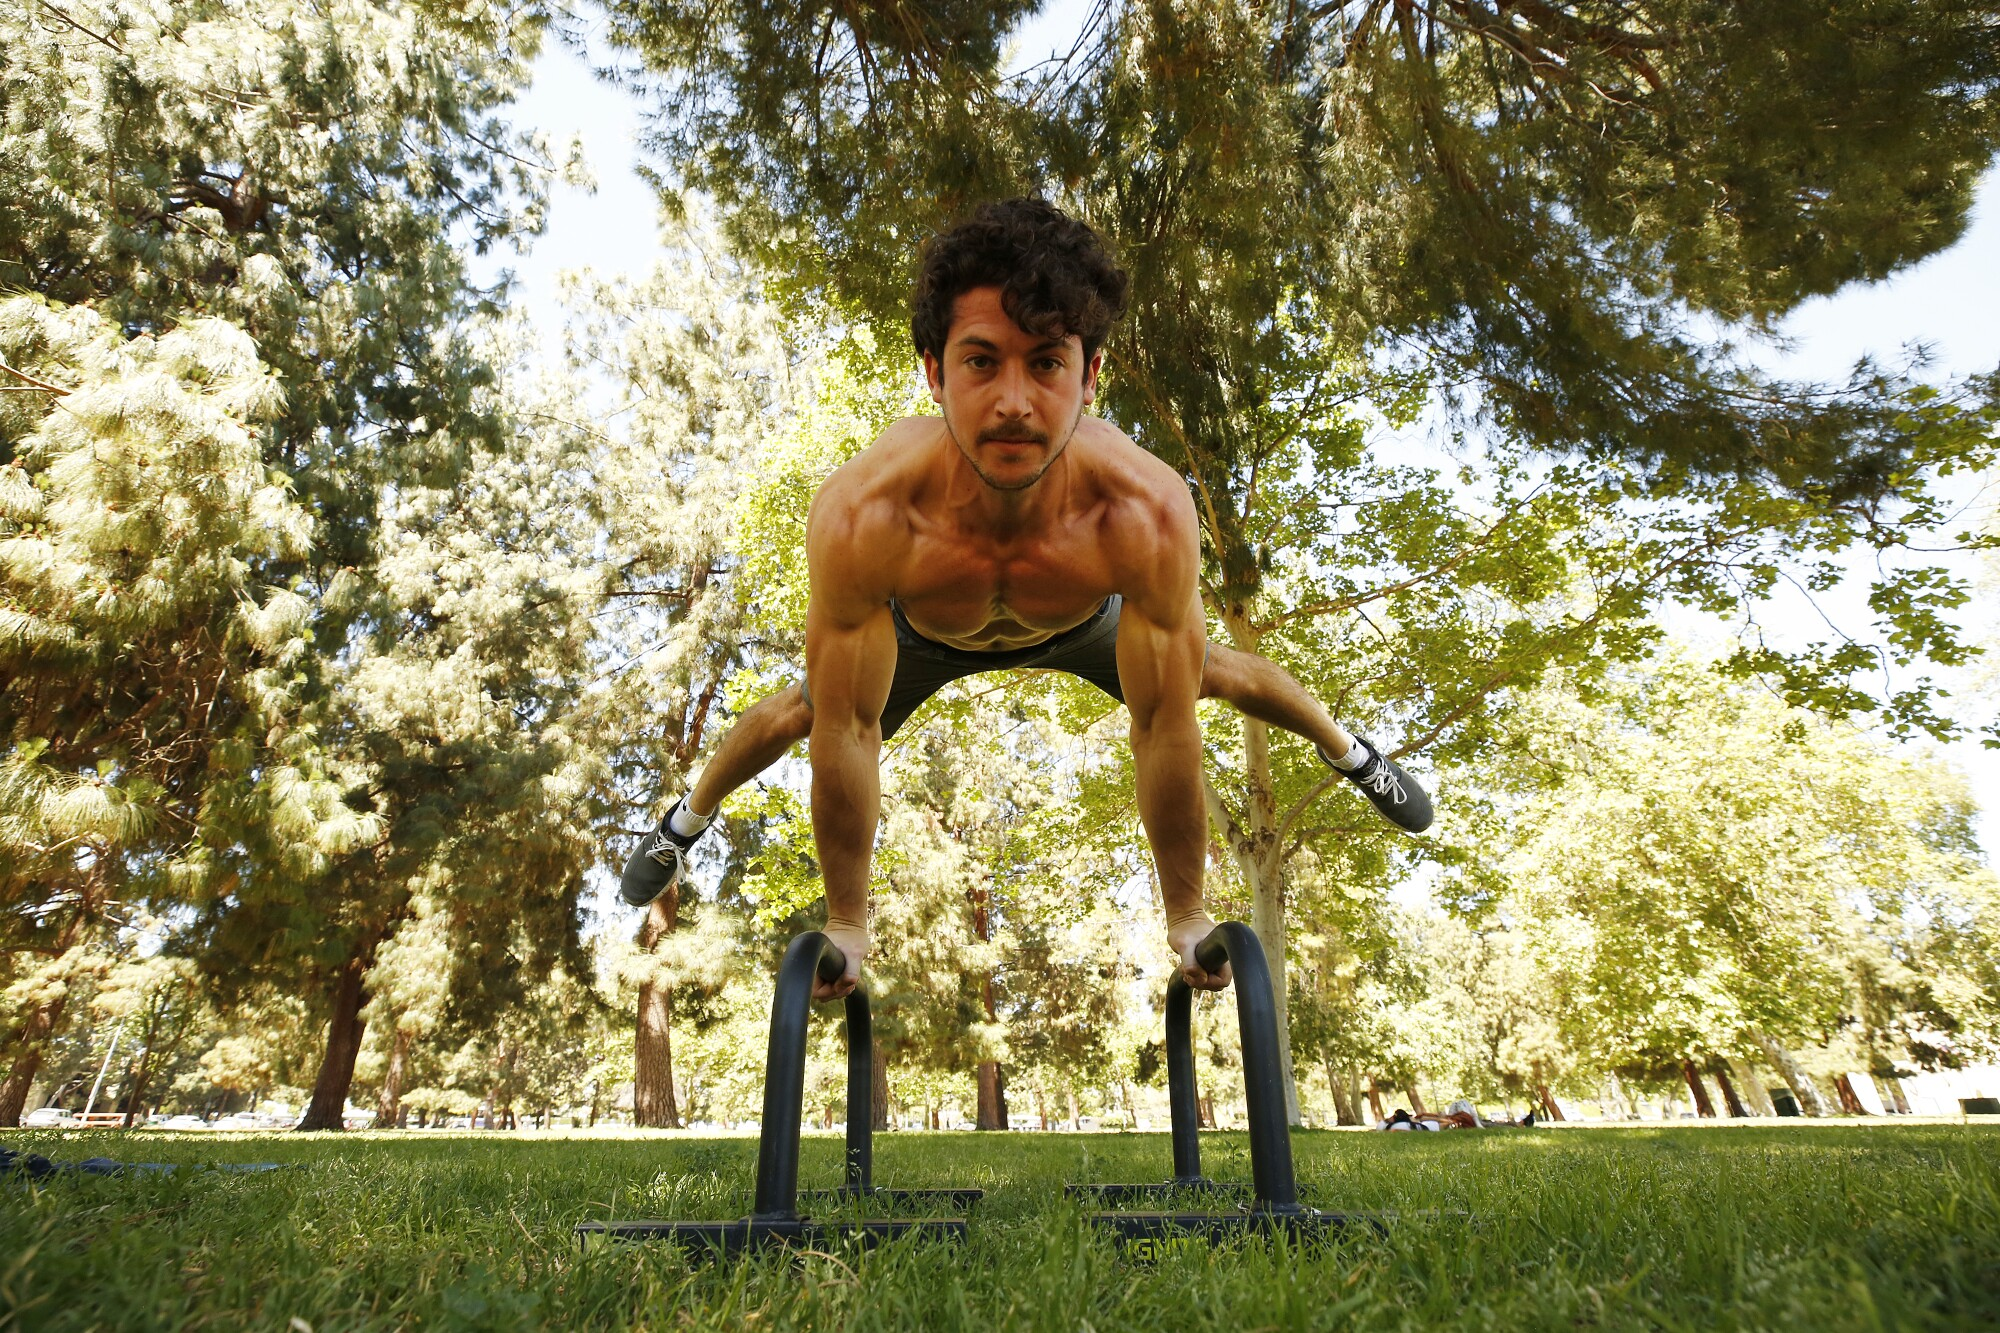 Personal trainer Yonatan Mishan works out in the shade at Warner Center Park in Woodland Hills.